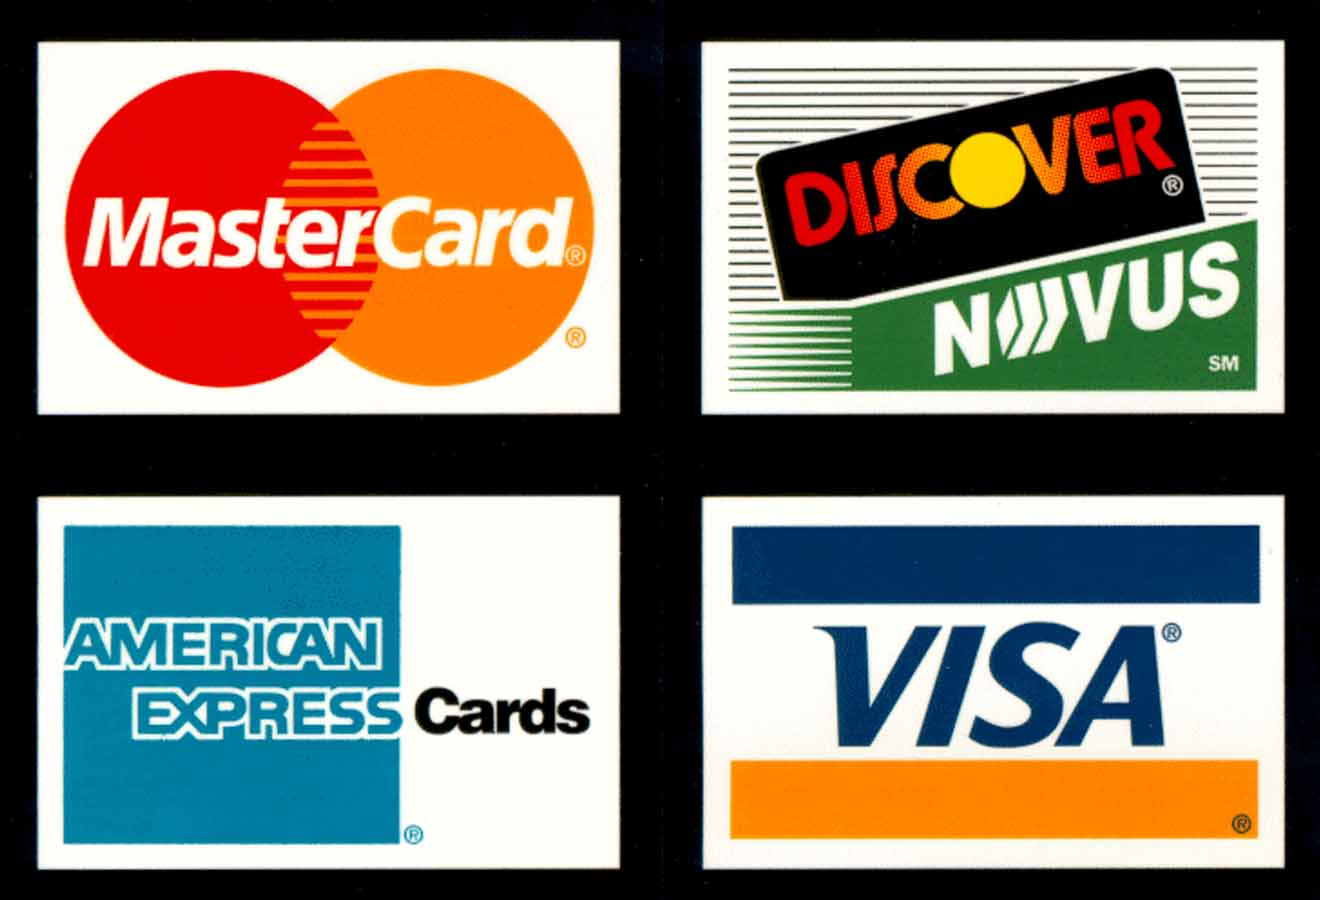 Card We Credit Discover Logo Express Accept American Mastercard Visa